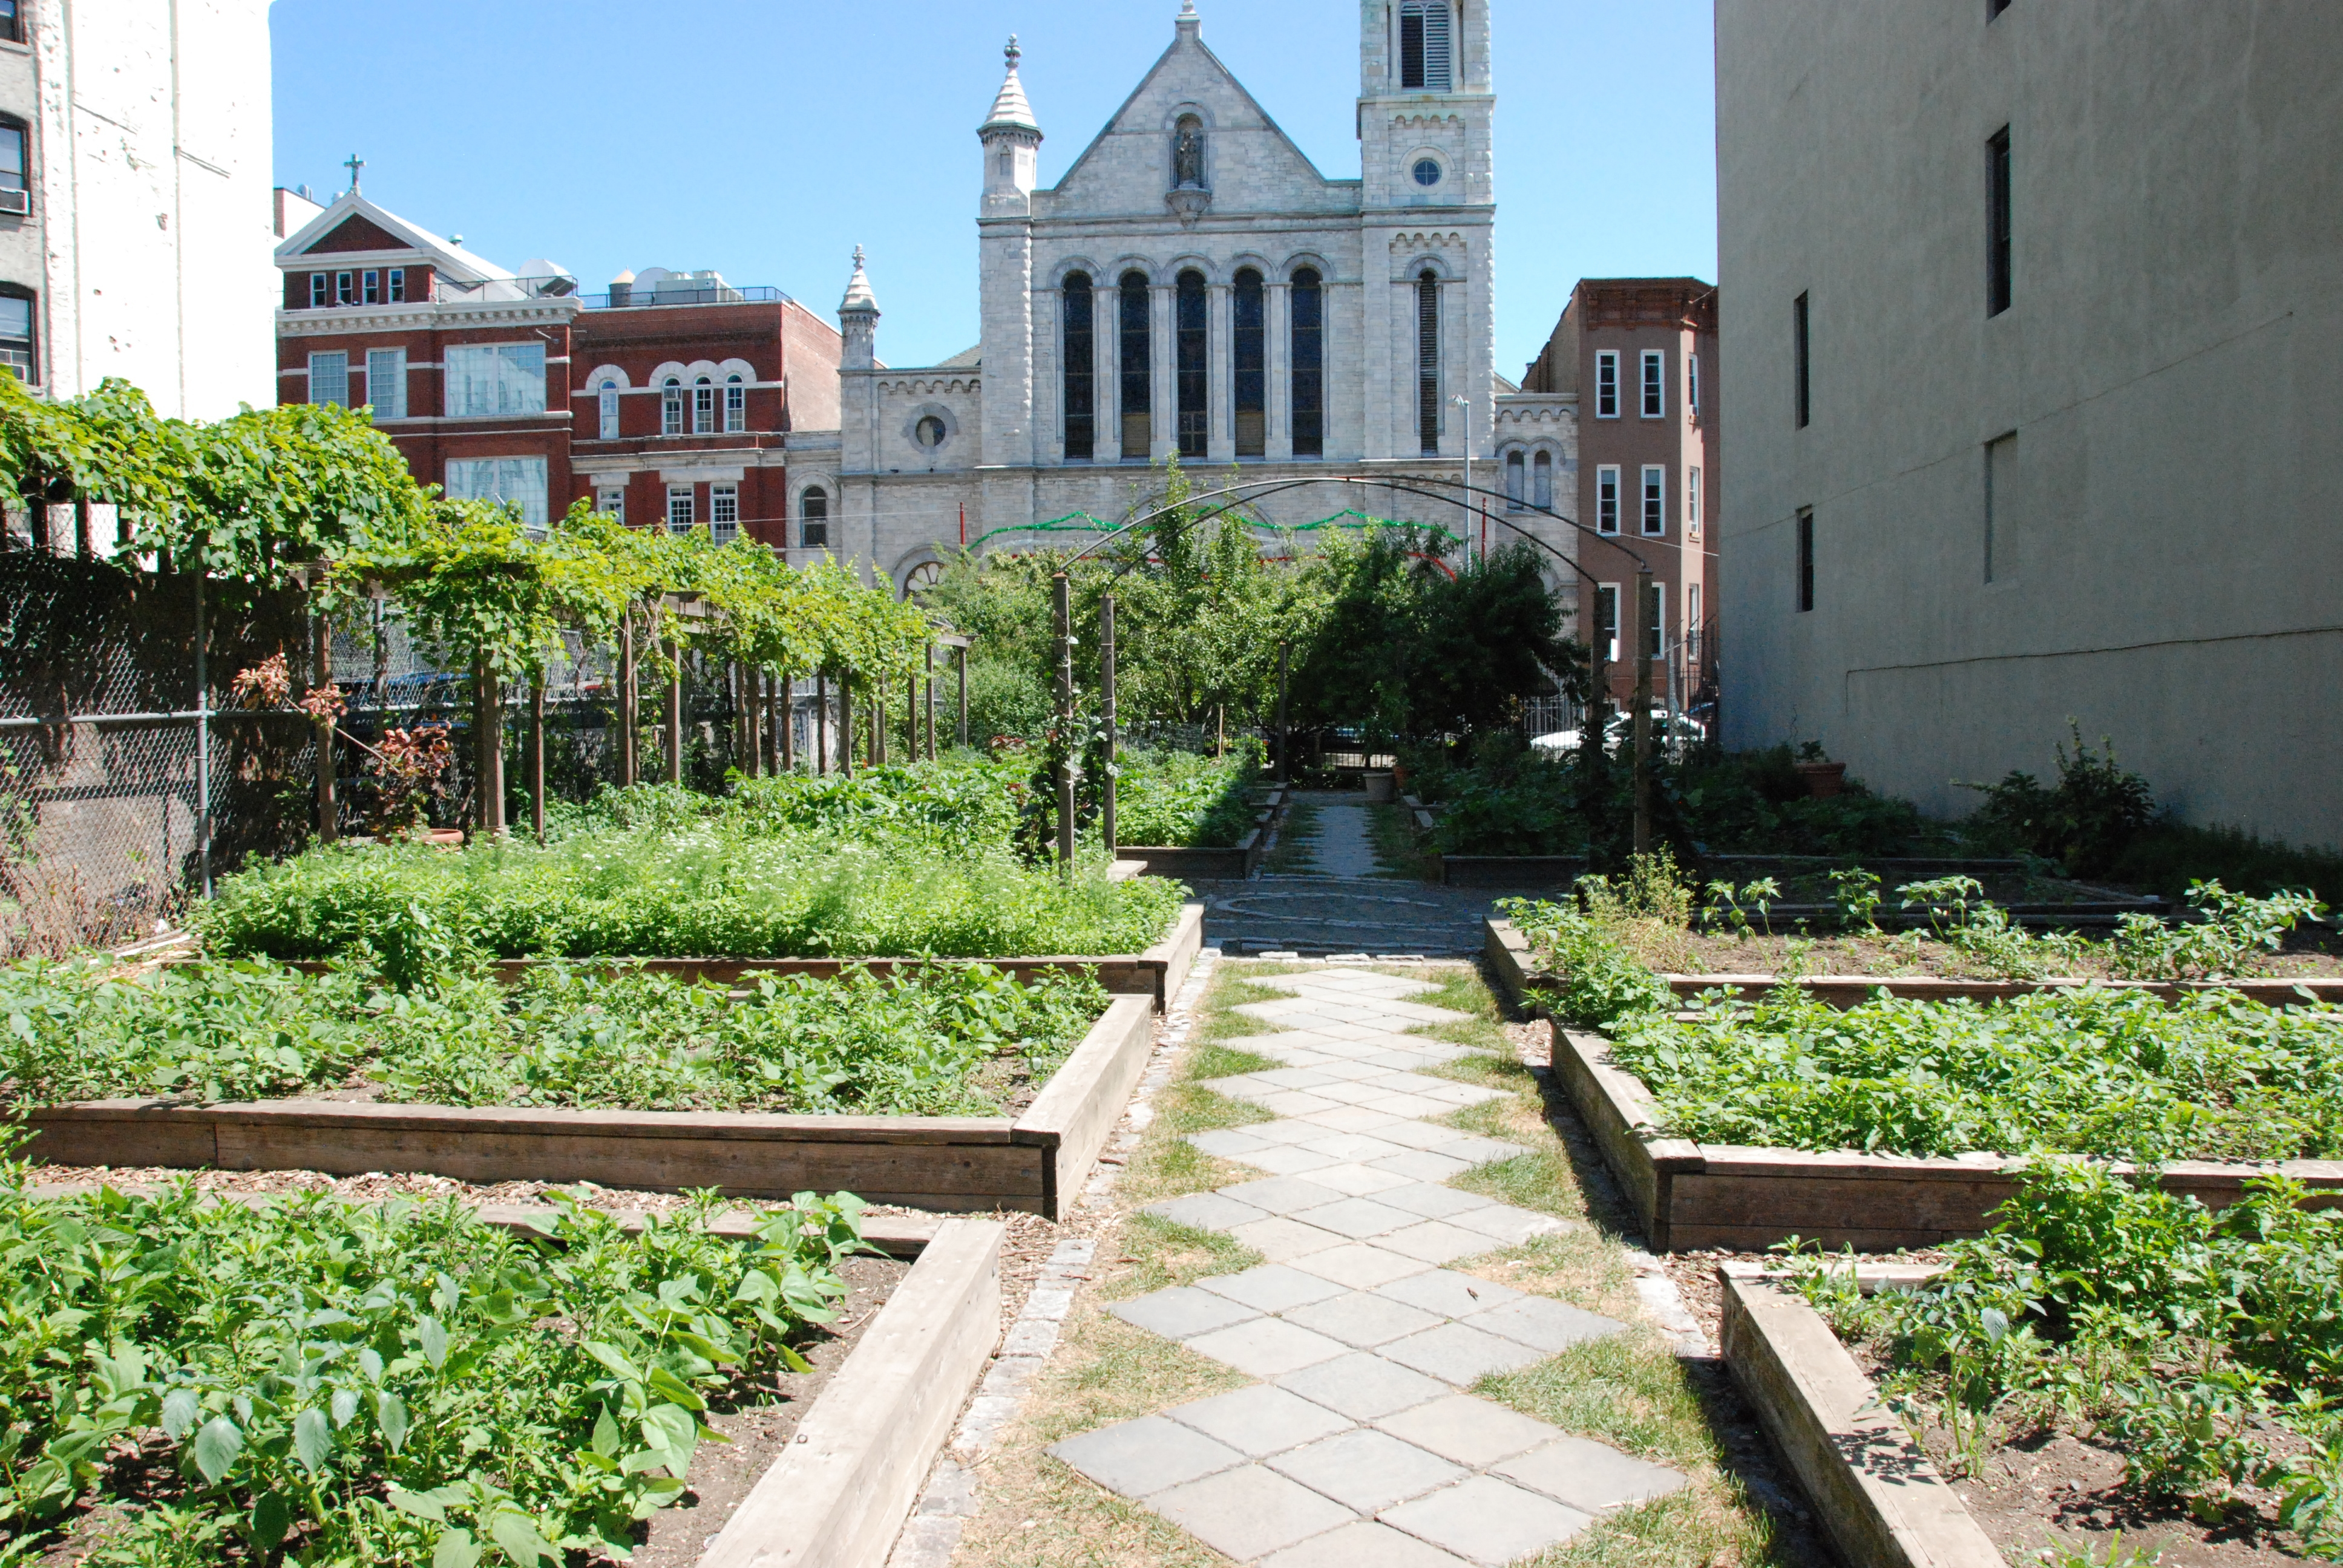 gardens in the city - photo #8